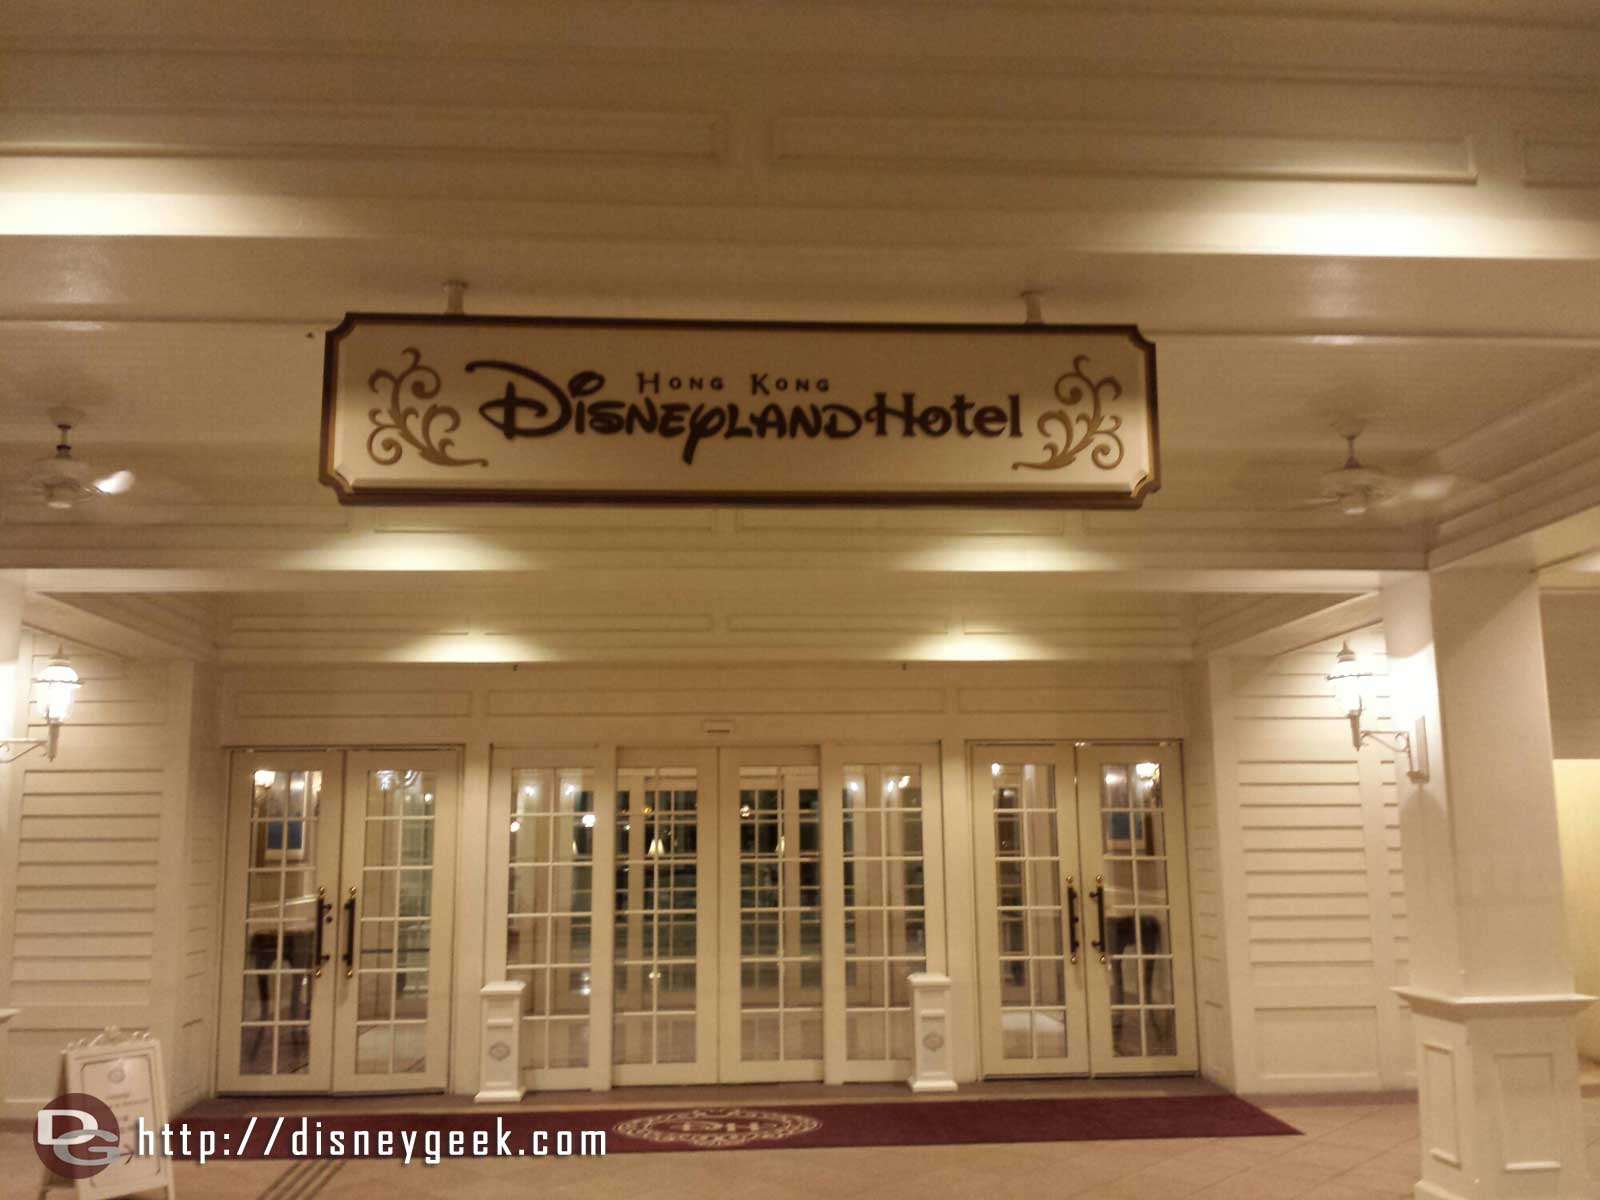 After approx 27hrs since I left home arrived at the #HongKongDisneyland Hotel #hkdl